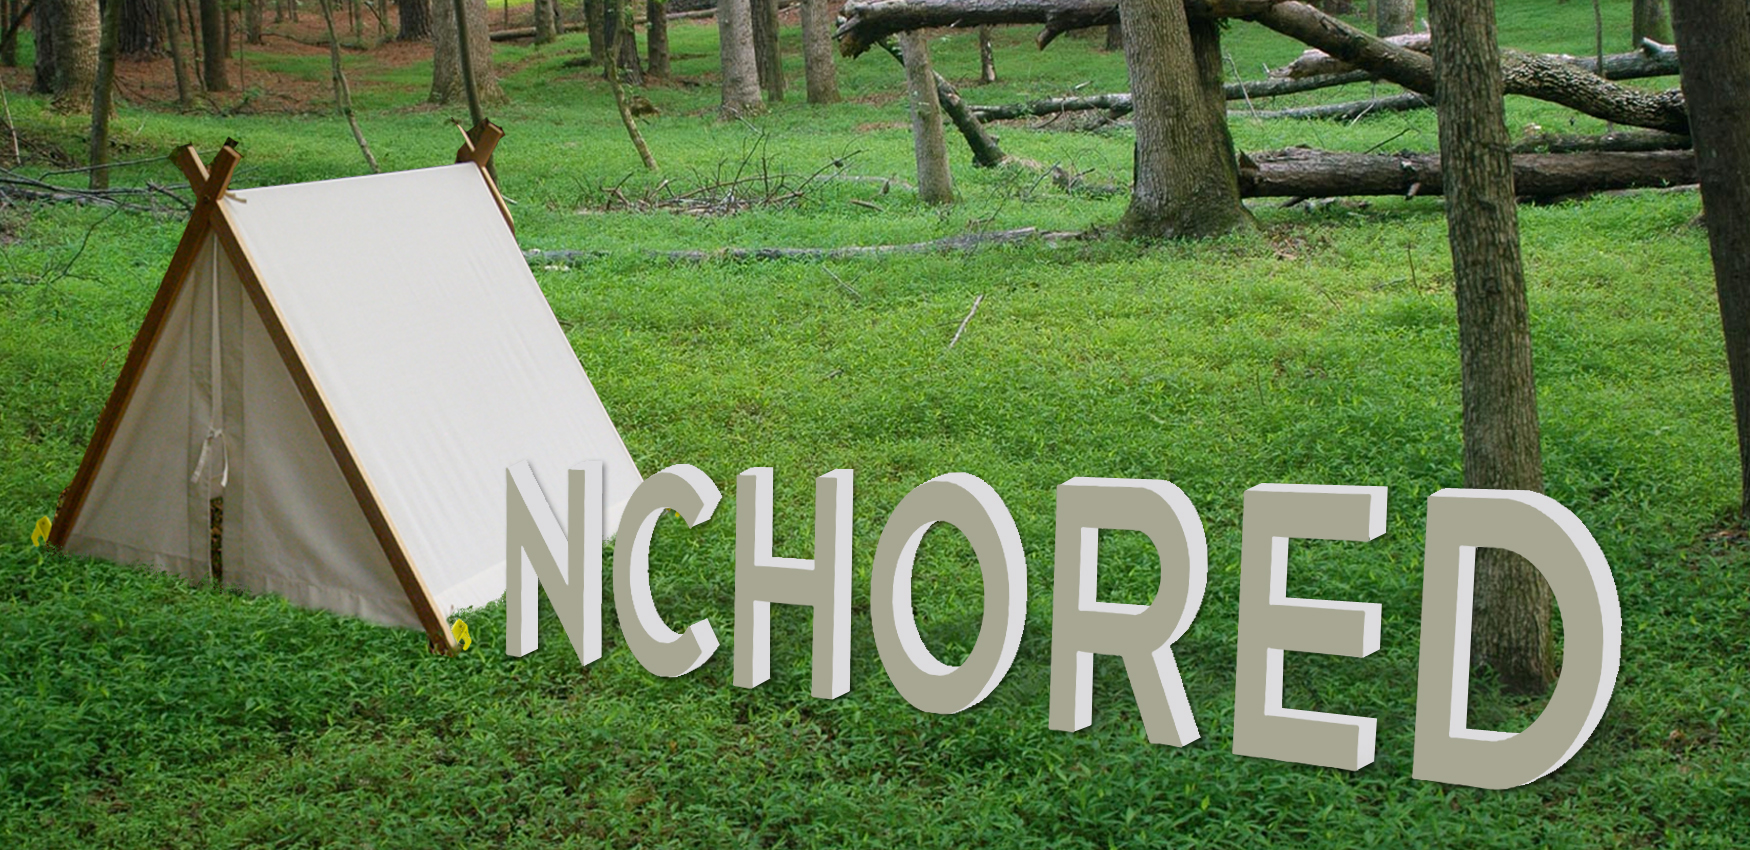 anchored_tent2.jpg